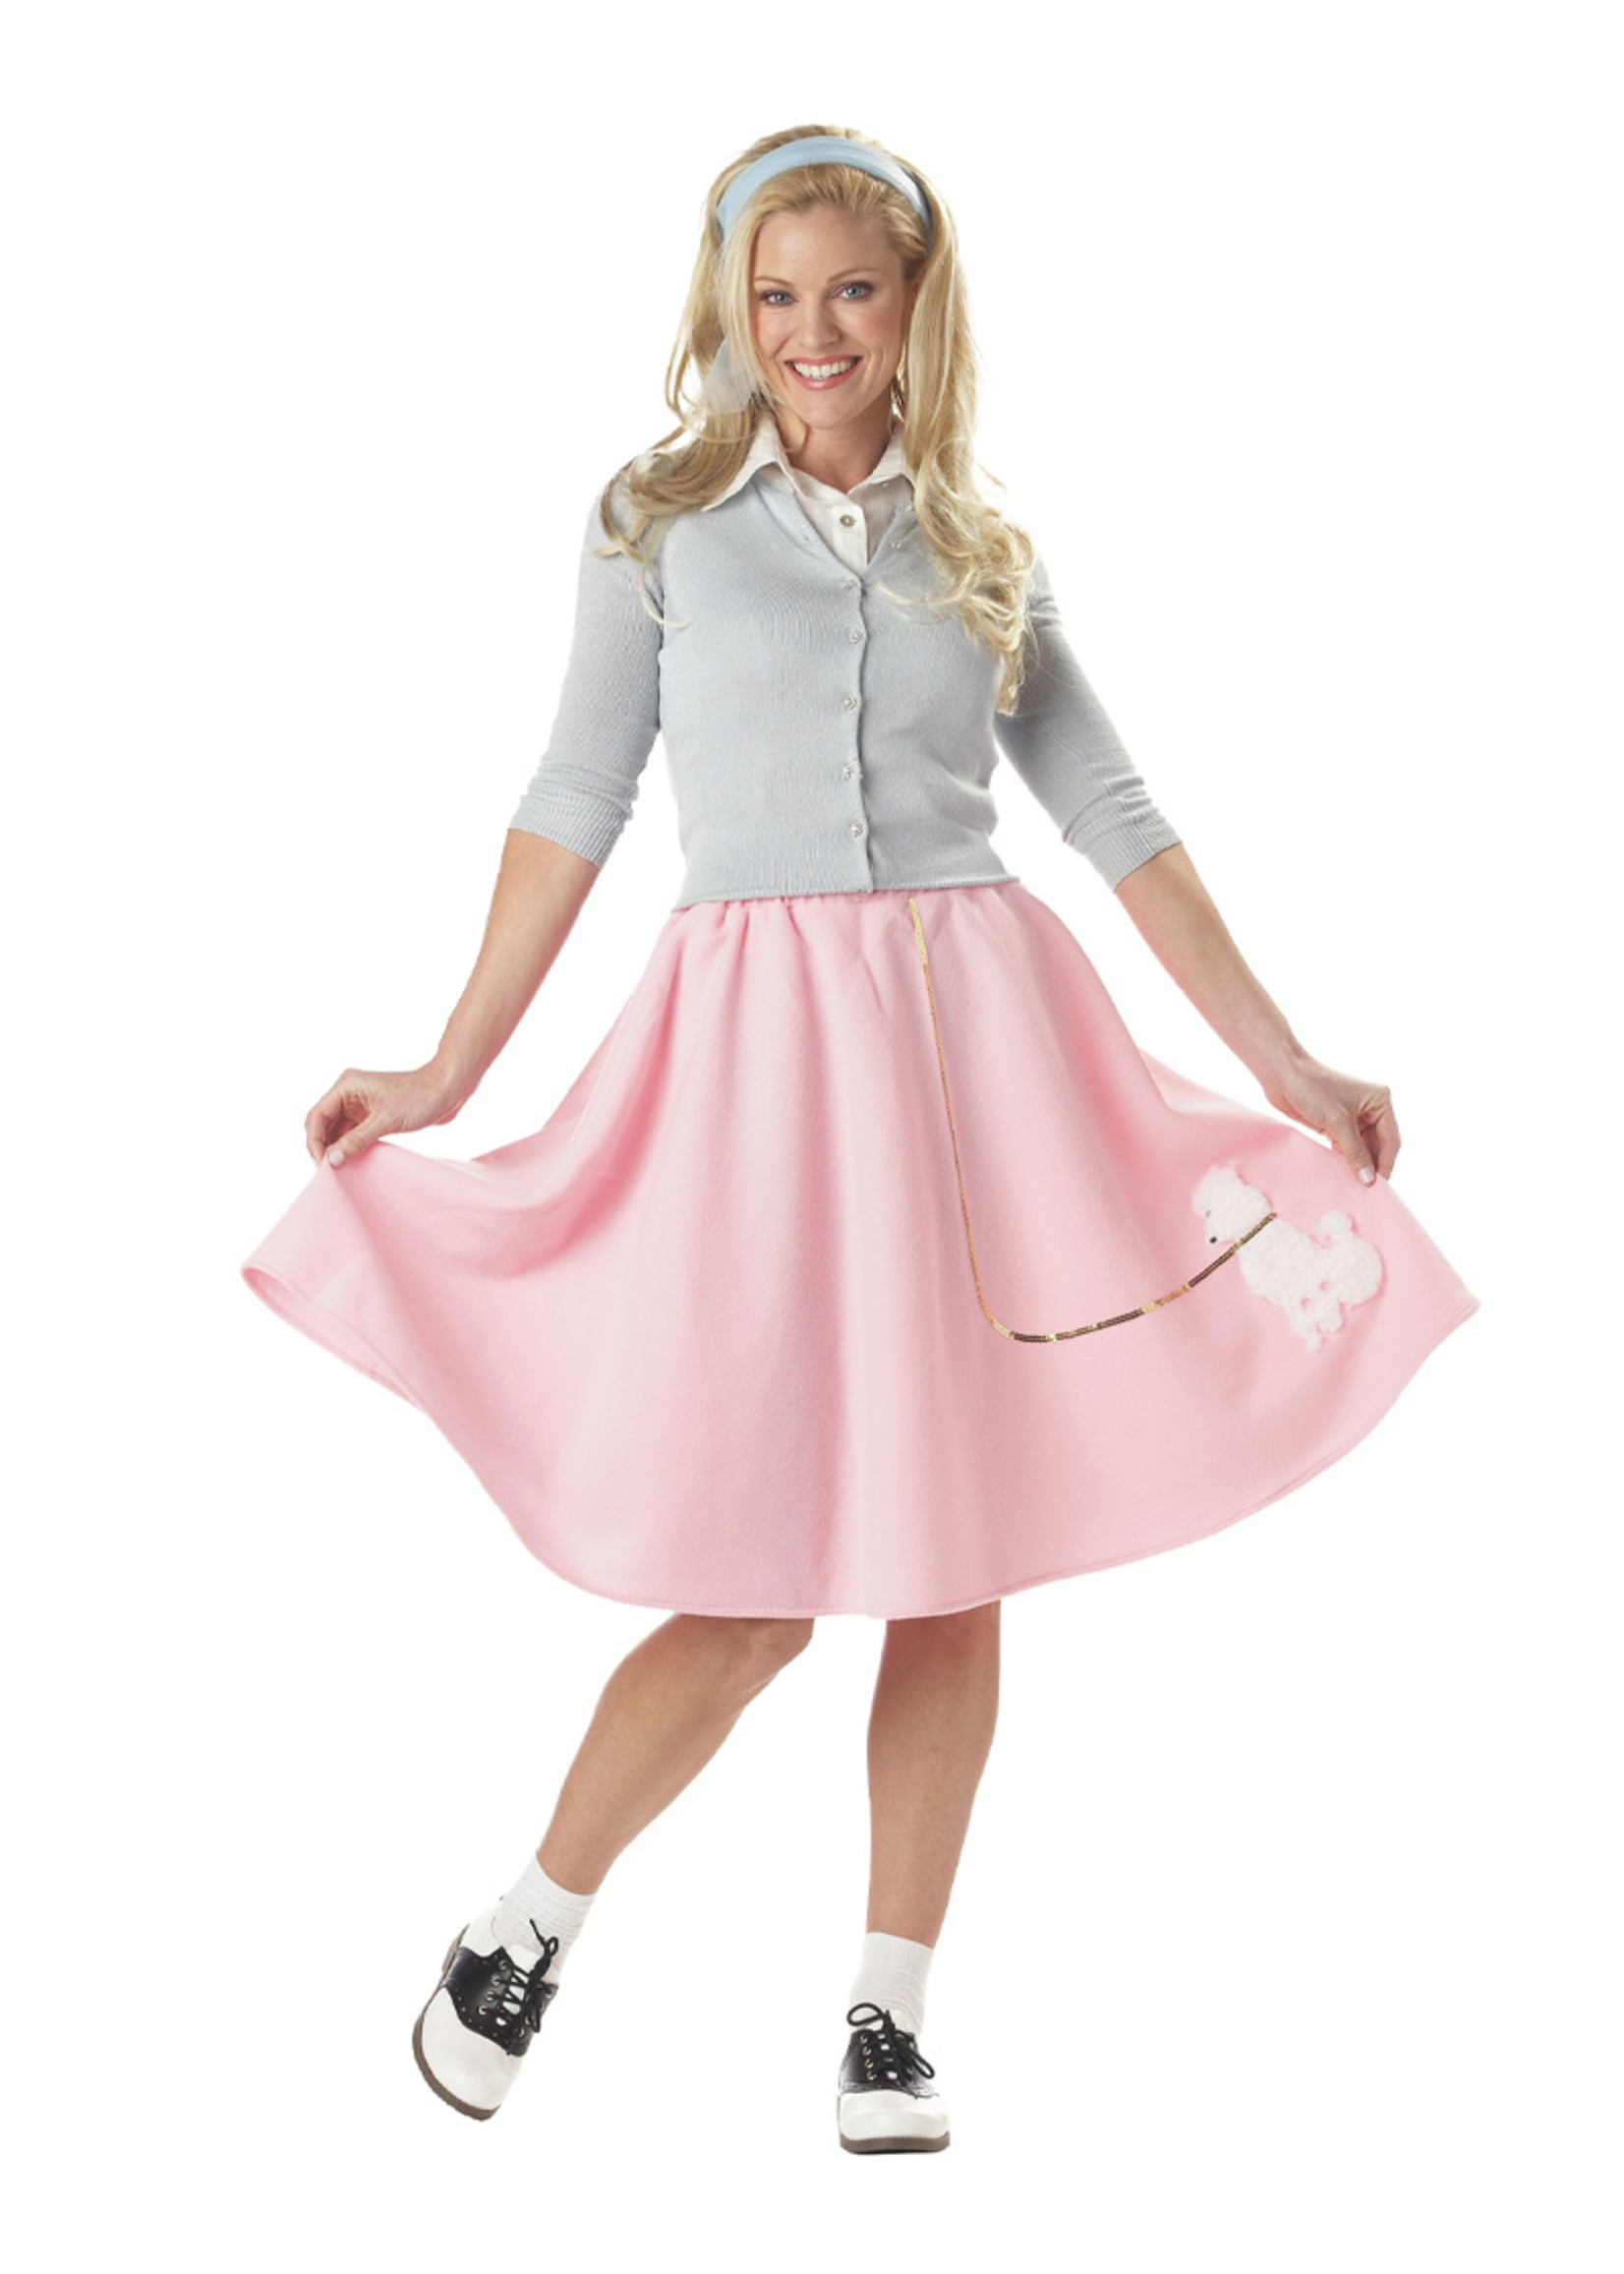 Poodle Skirt Costume - Women's